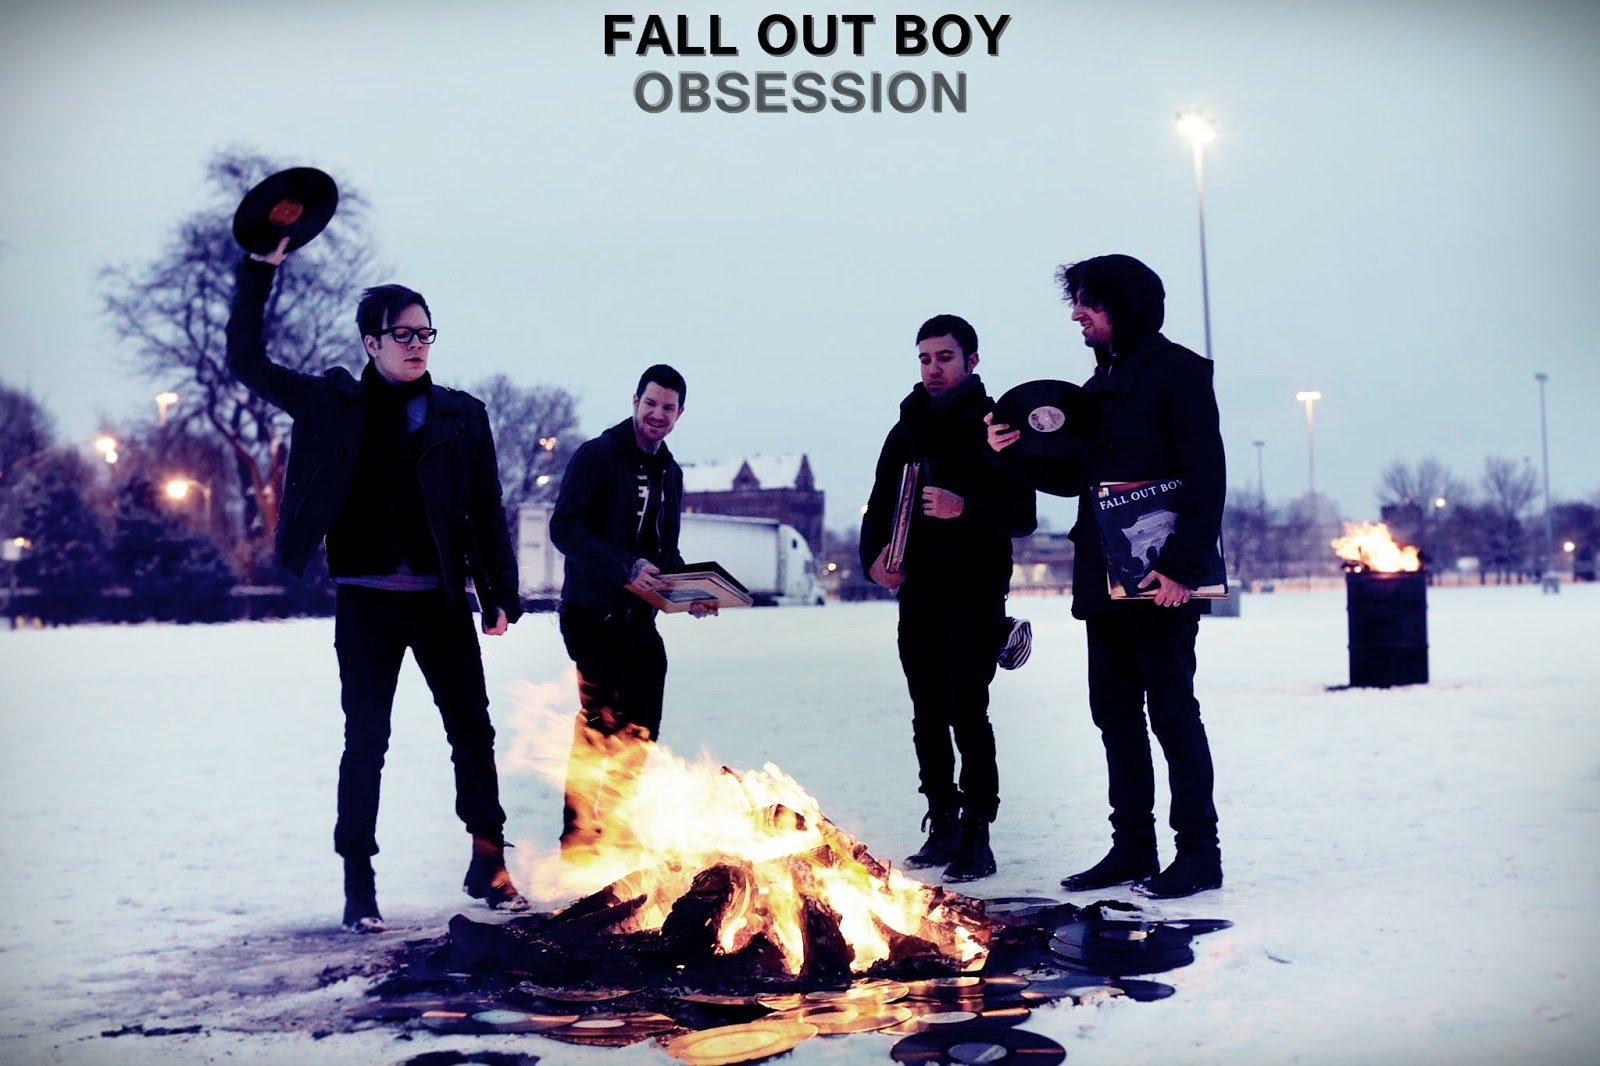 73+] Fall Out Boy Wallpapers on WallpaperSafari